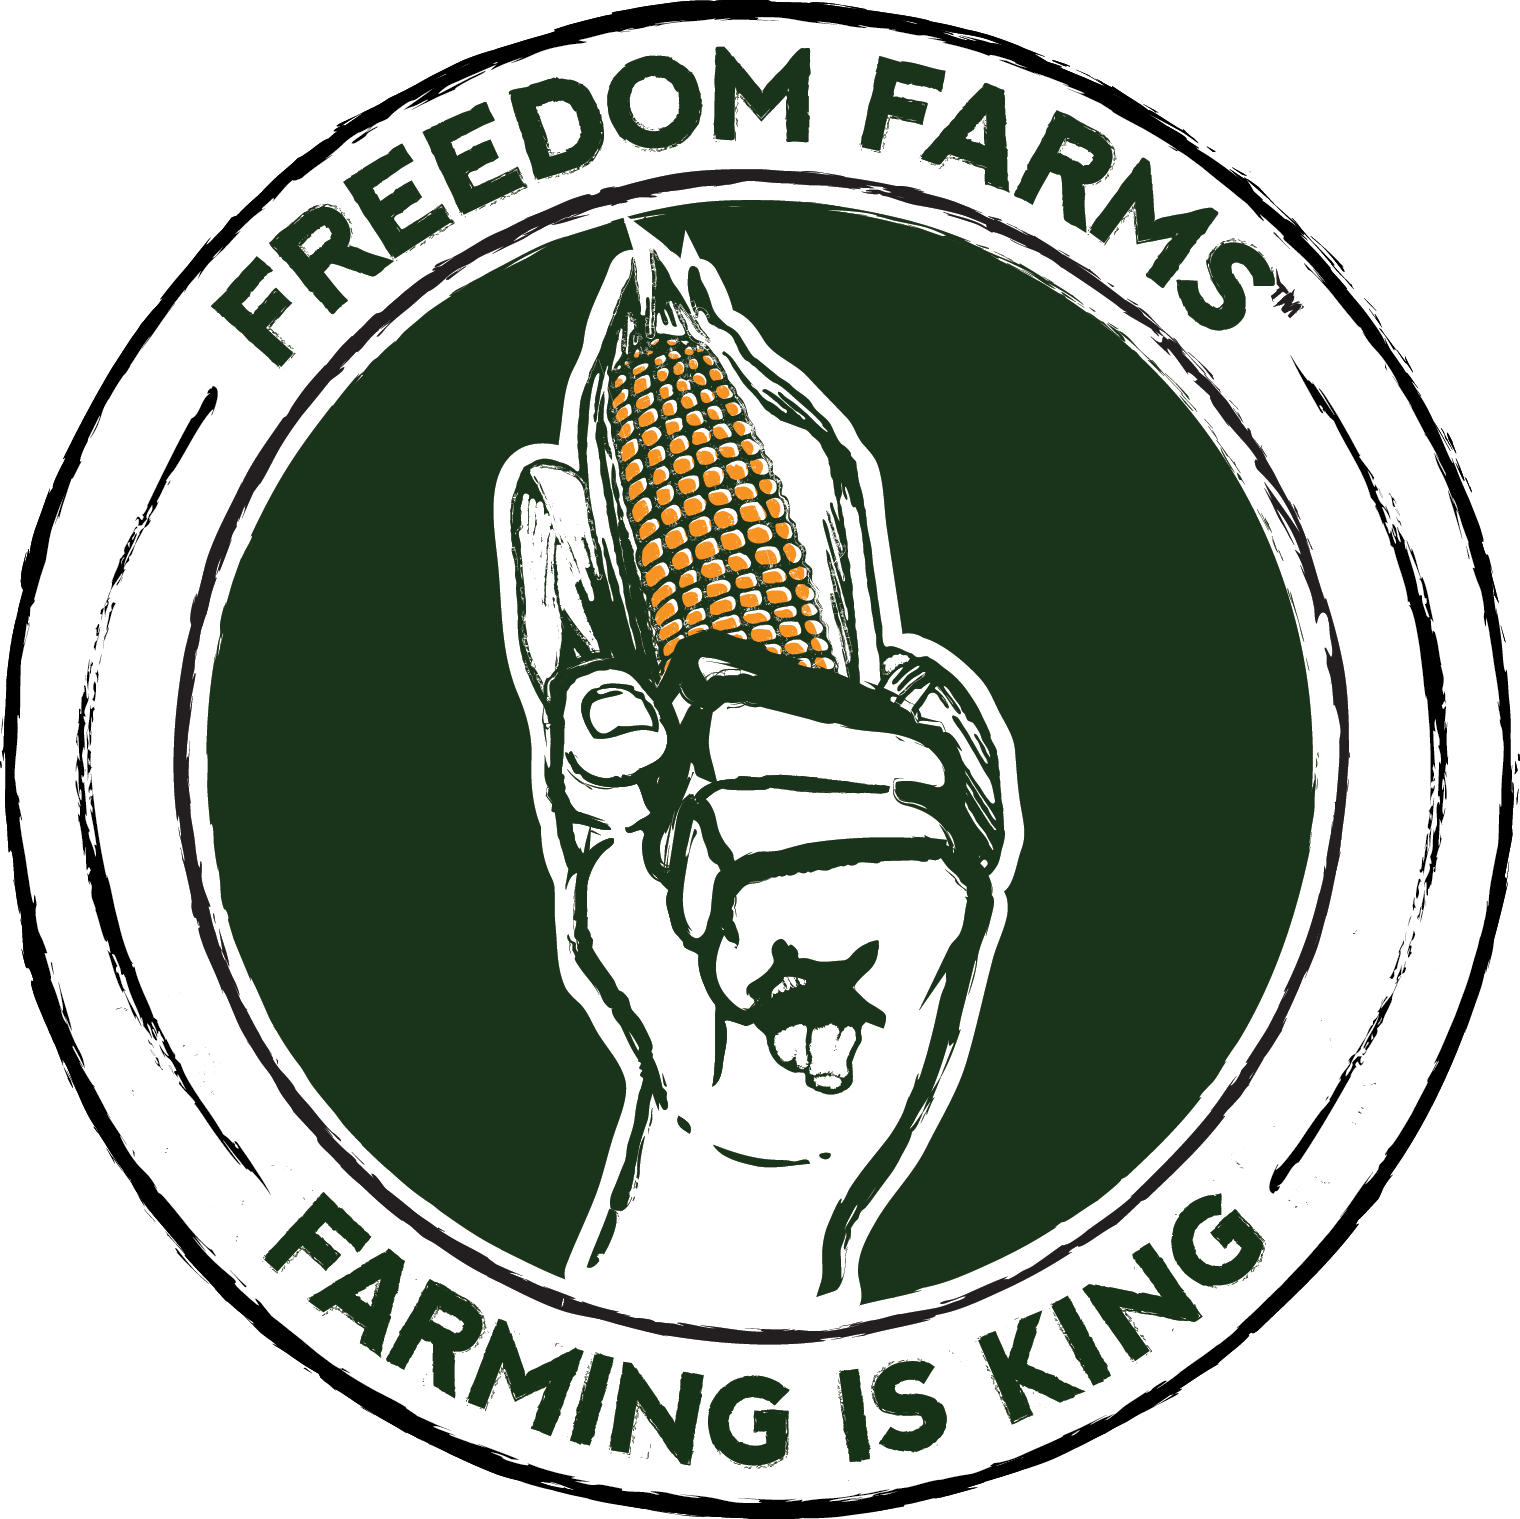 At The Freedom Farms Farmers Market We Bring You The Freshest Meats And Produce Stop By Today And Treat Yourself To A He Farmers Market Donut Shop Fresh Meat